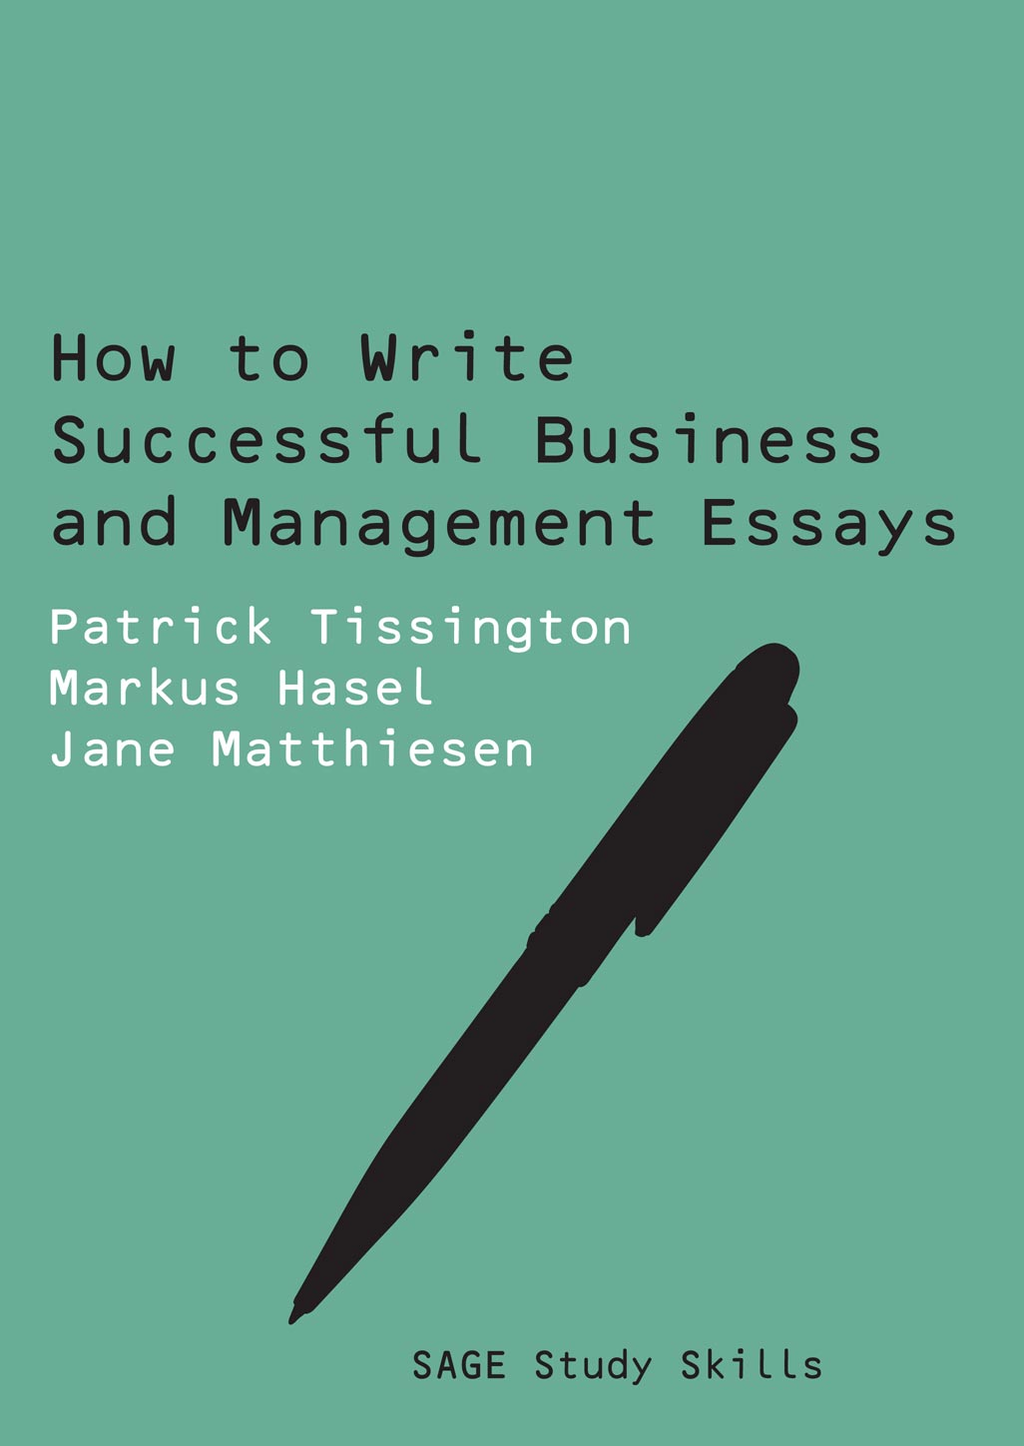 How to Write Successful Business and Management Essays By: Jane Matthiesen,Markus Hasel,Patrick Tissington